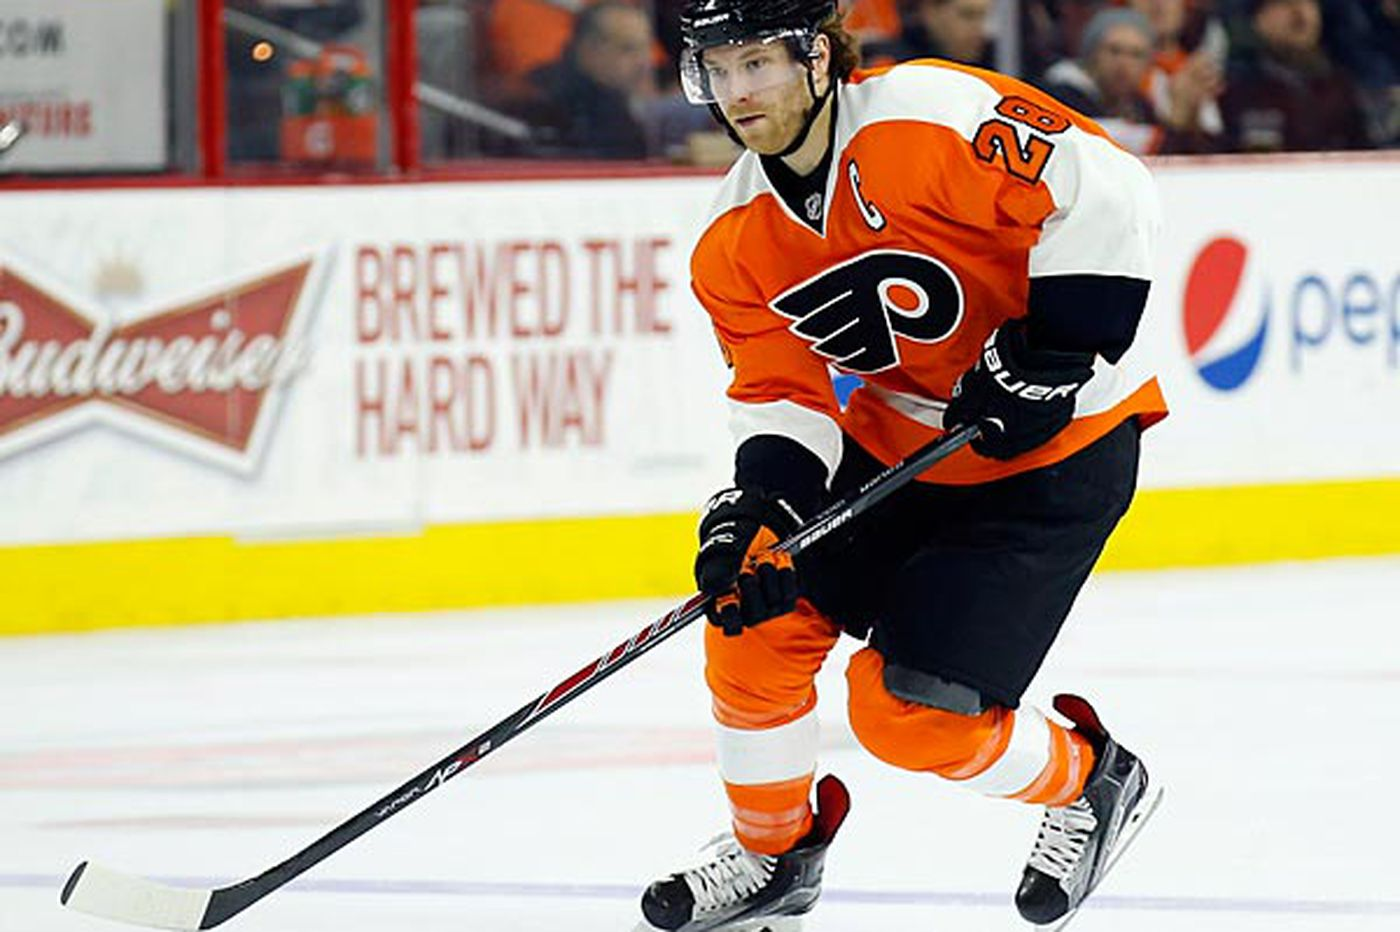 Flyers Notes: Berube says he's fine with Giroux's leadership